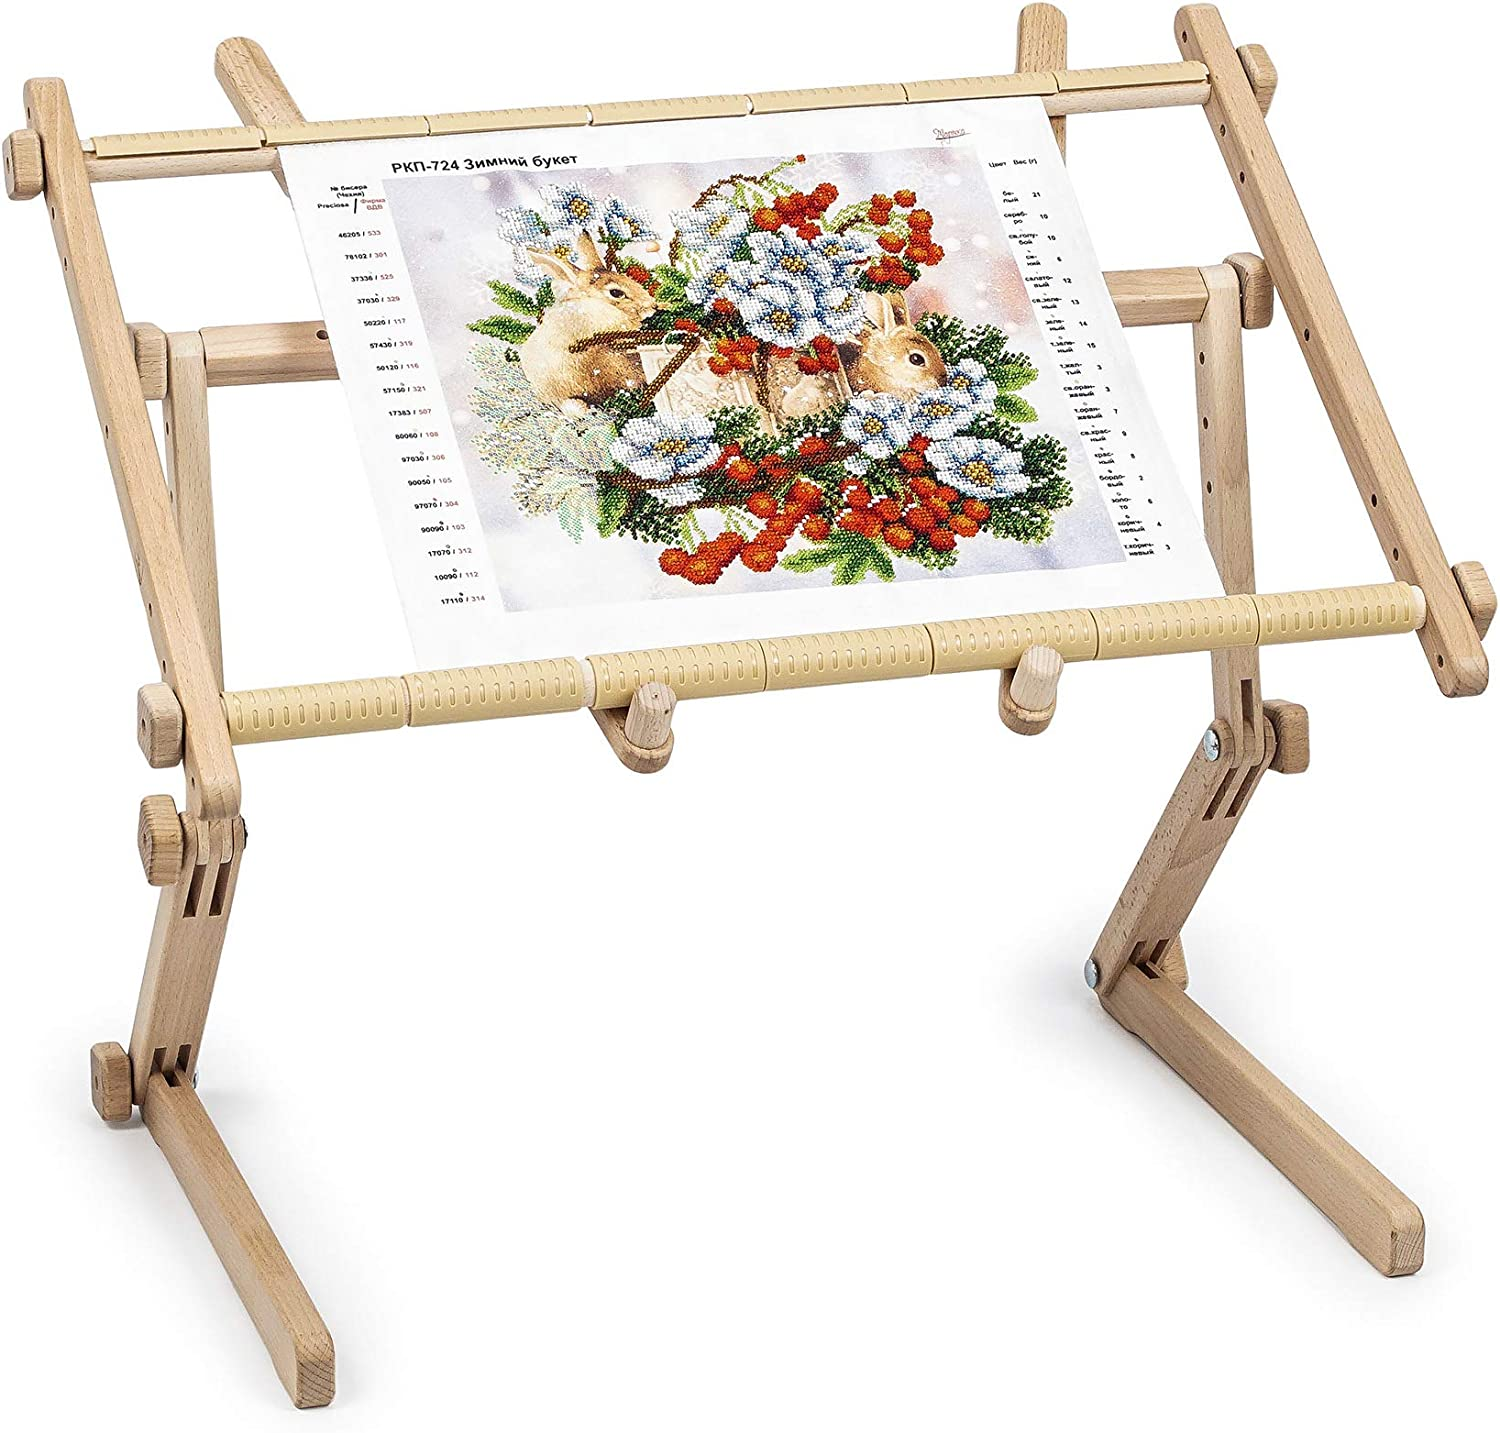 Needlework Table and Lap Hands-Free Stand Made of Organic Beech Wood Tapestry Cross Stitch Embroidery Frame Holder